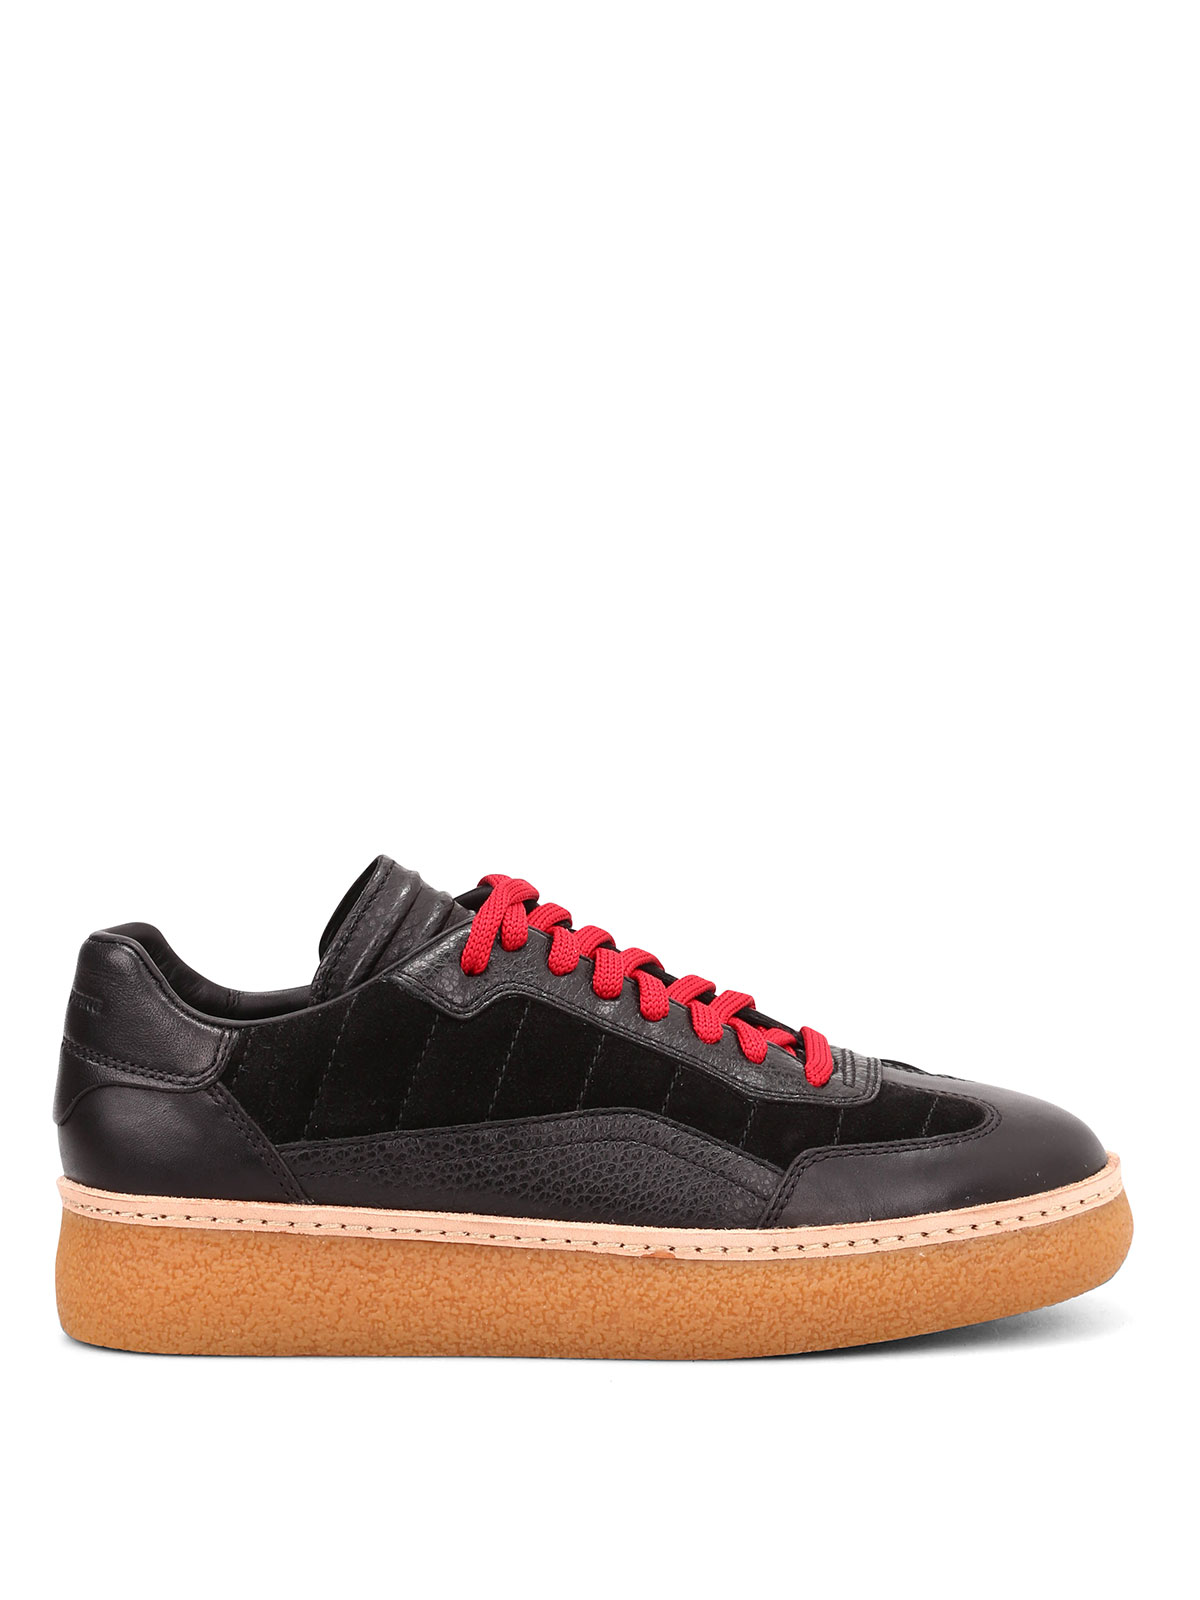 fe36c8741f7cce Alexander Wang - Eden low-top sneakers - trainers - 302123P16 001